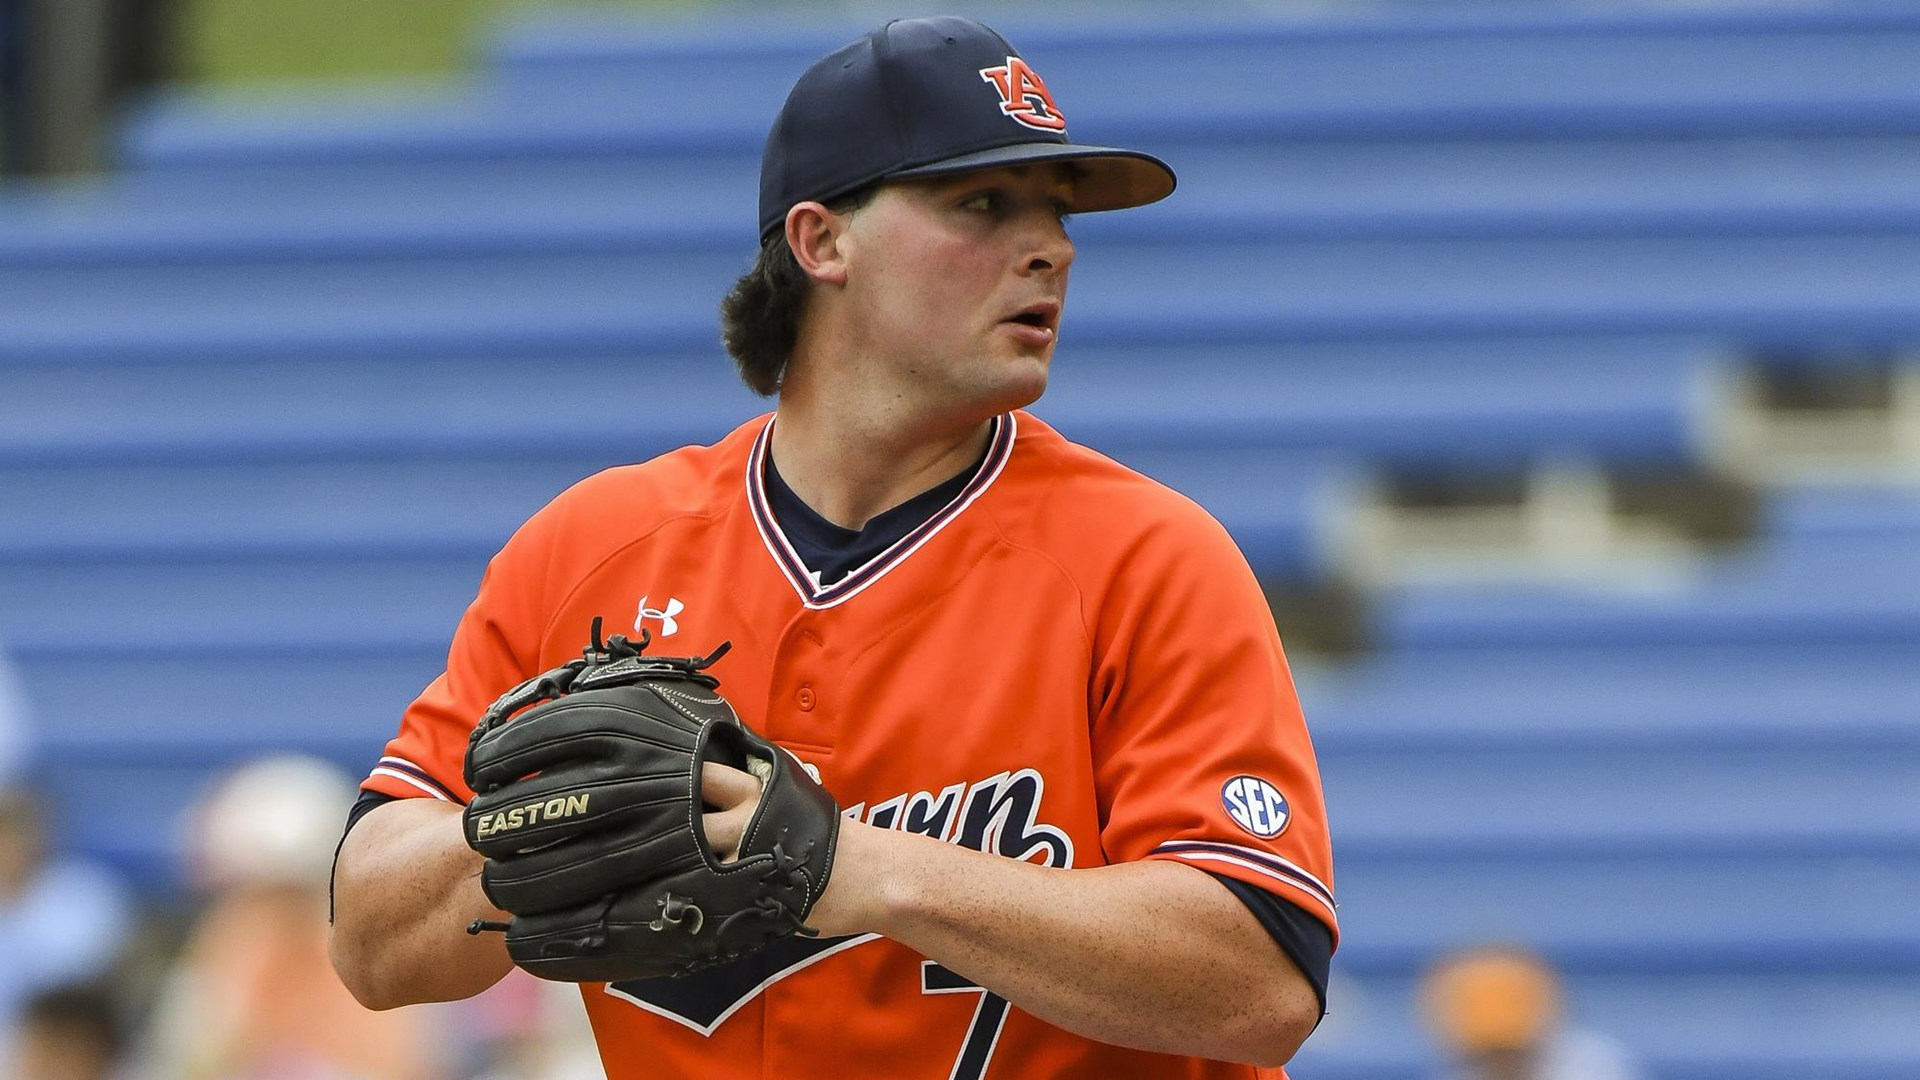 Auburn wins pitching duel in series opener at UCF